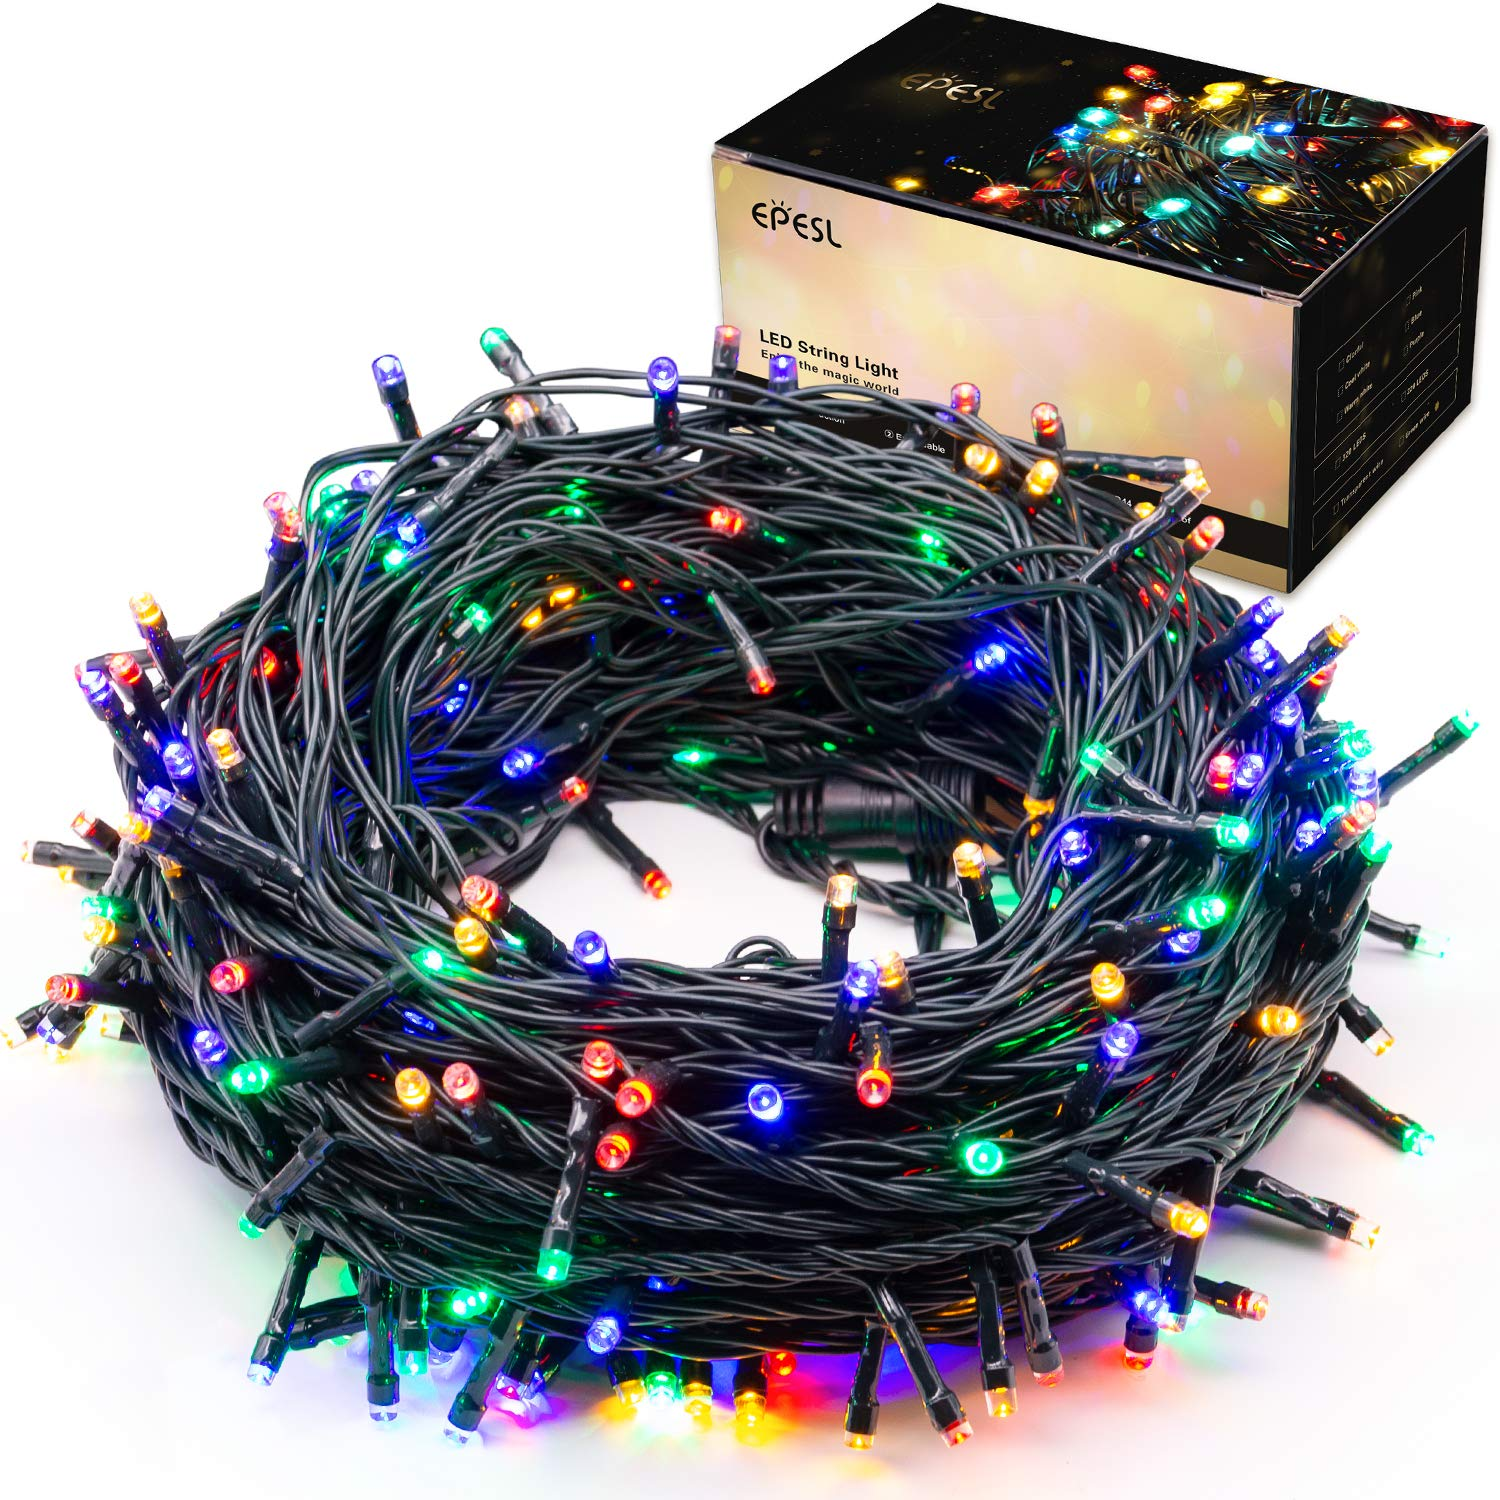 EPESL Indoor/Outdoor String Lights 22m/72ft 220 LEDs 8 Modes Memory Function End-to-End Extendable Plug in Waterproof Fairy Lights for Christmas/Thanksgiving Day/Halloween/Wedding/Patio - Colorful